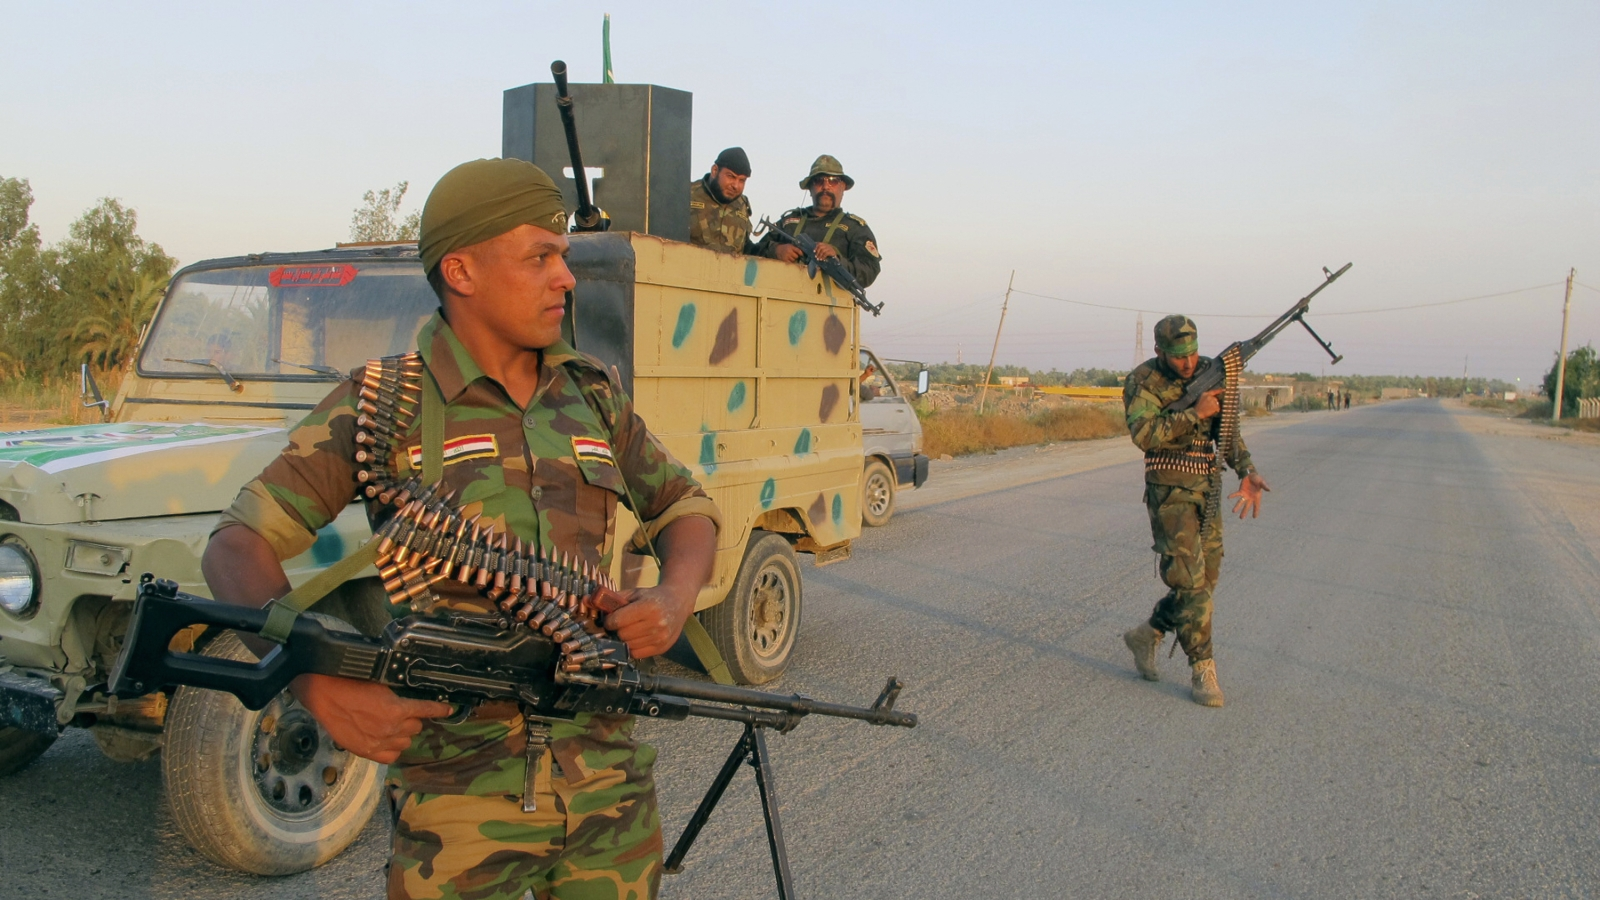 Shi'ite fighters participate in an intensive security deployment against Islamic State militants in Jurf al-Sakhar